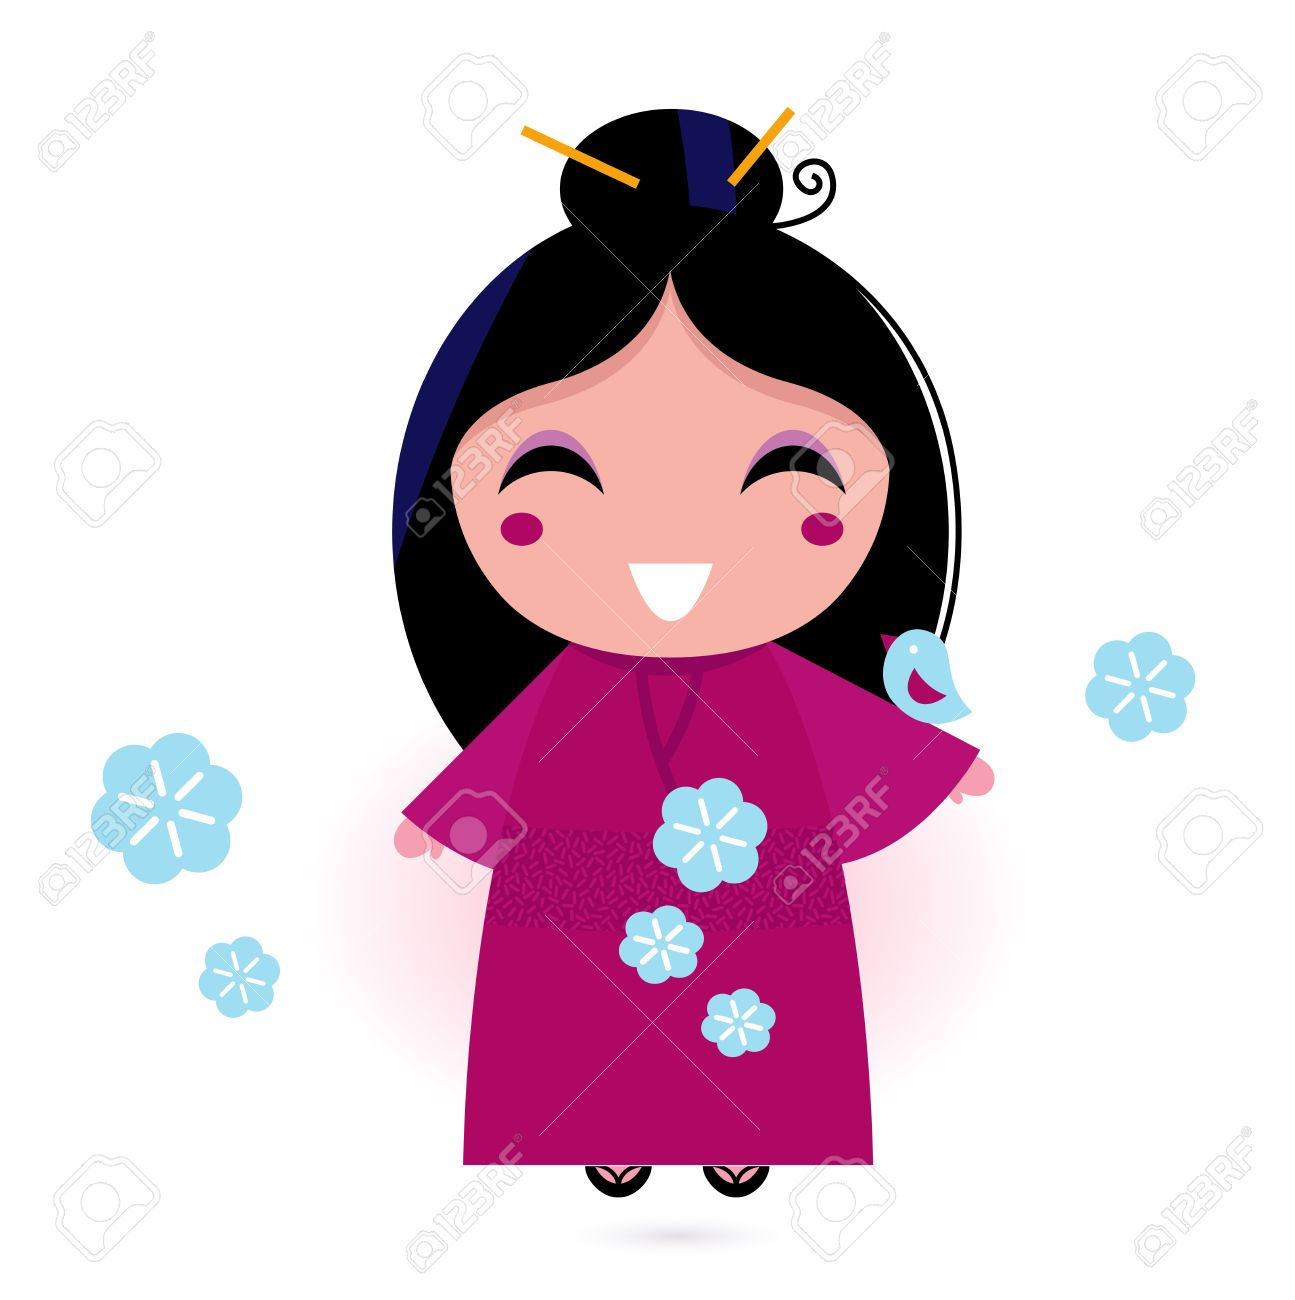 1295x1300 Stylized Cute Japanese Woman. Vector Illustration Royalty Free